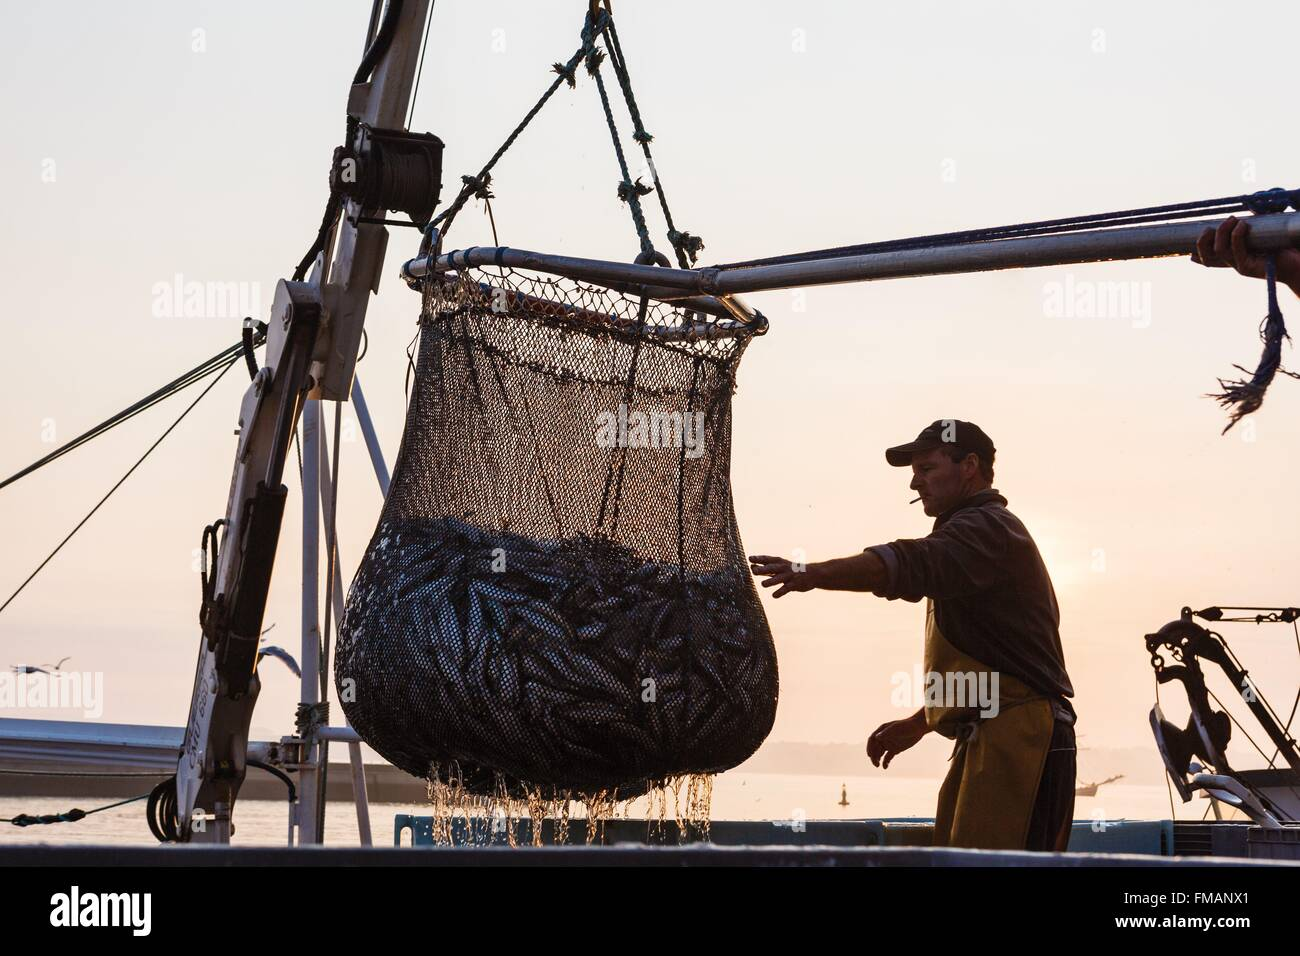 France, Finistere, Douarnenez, man guiding a fish net full to empty in a tray - Stock Image